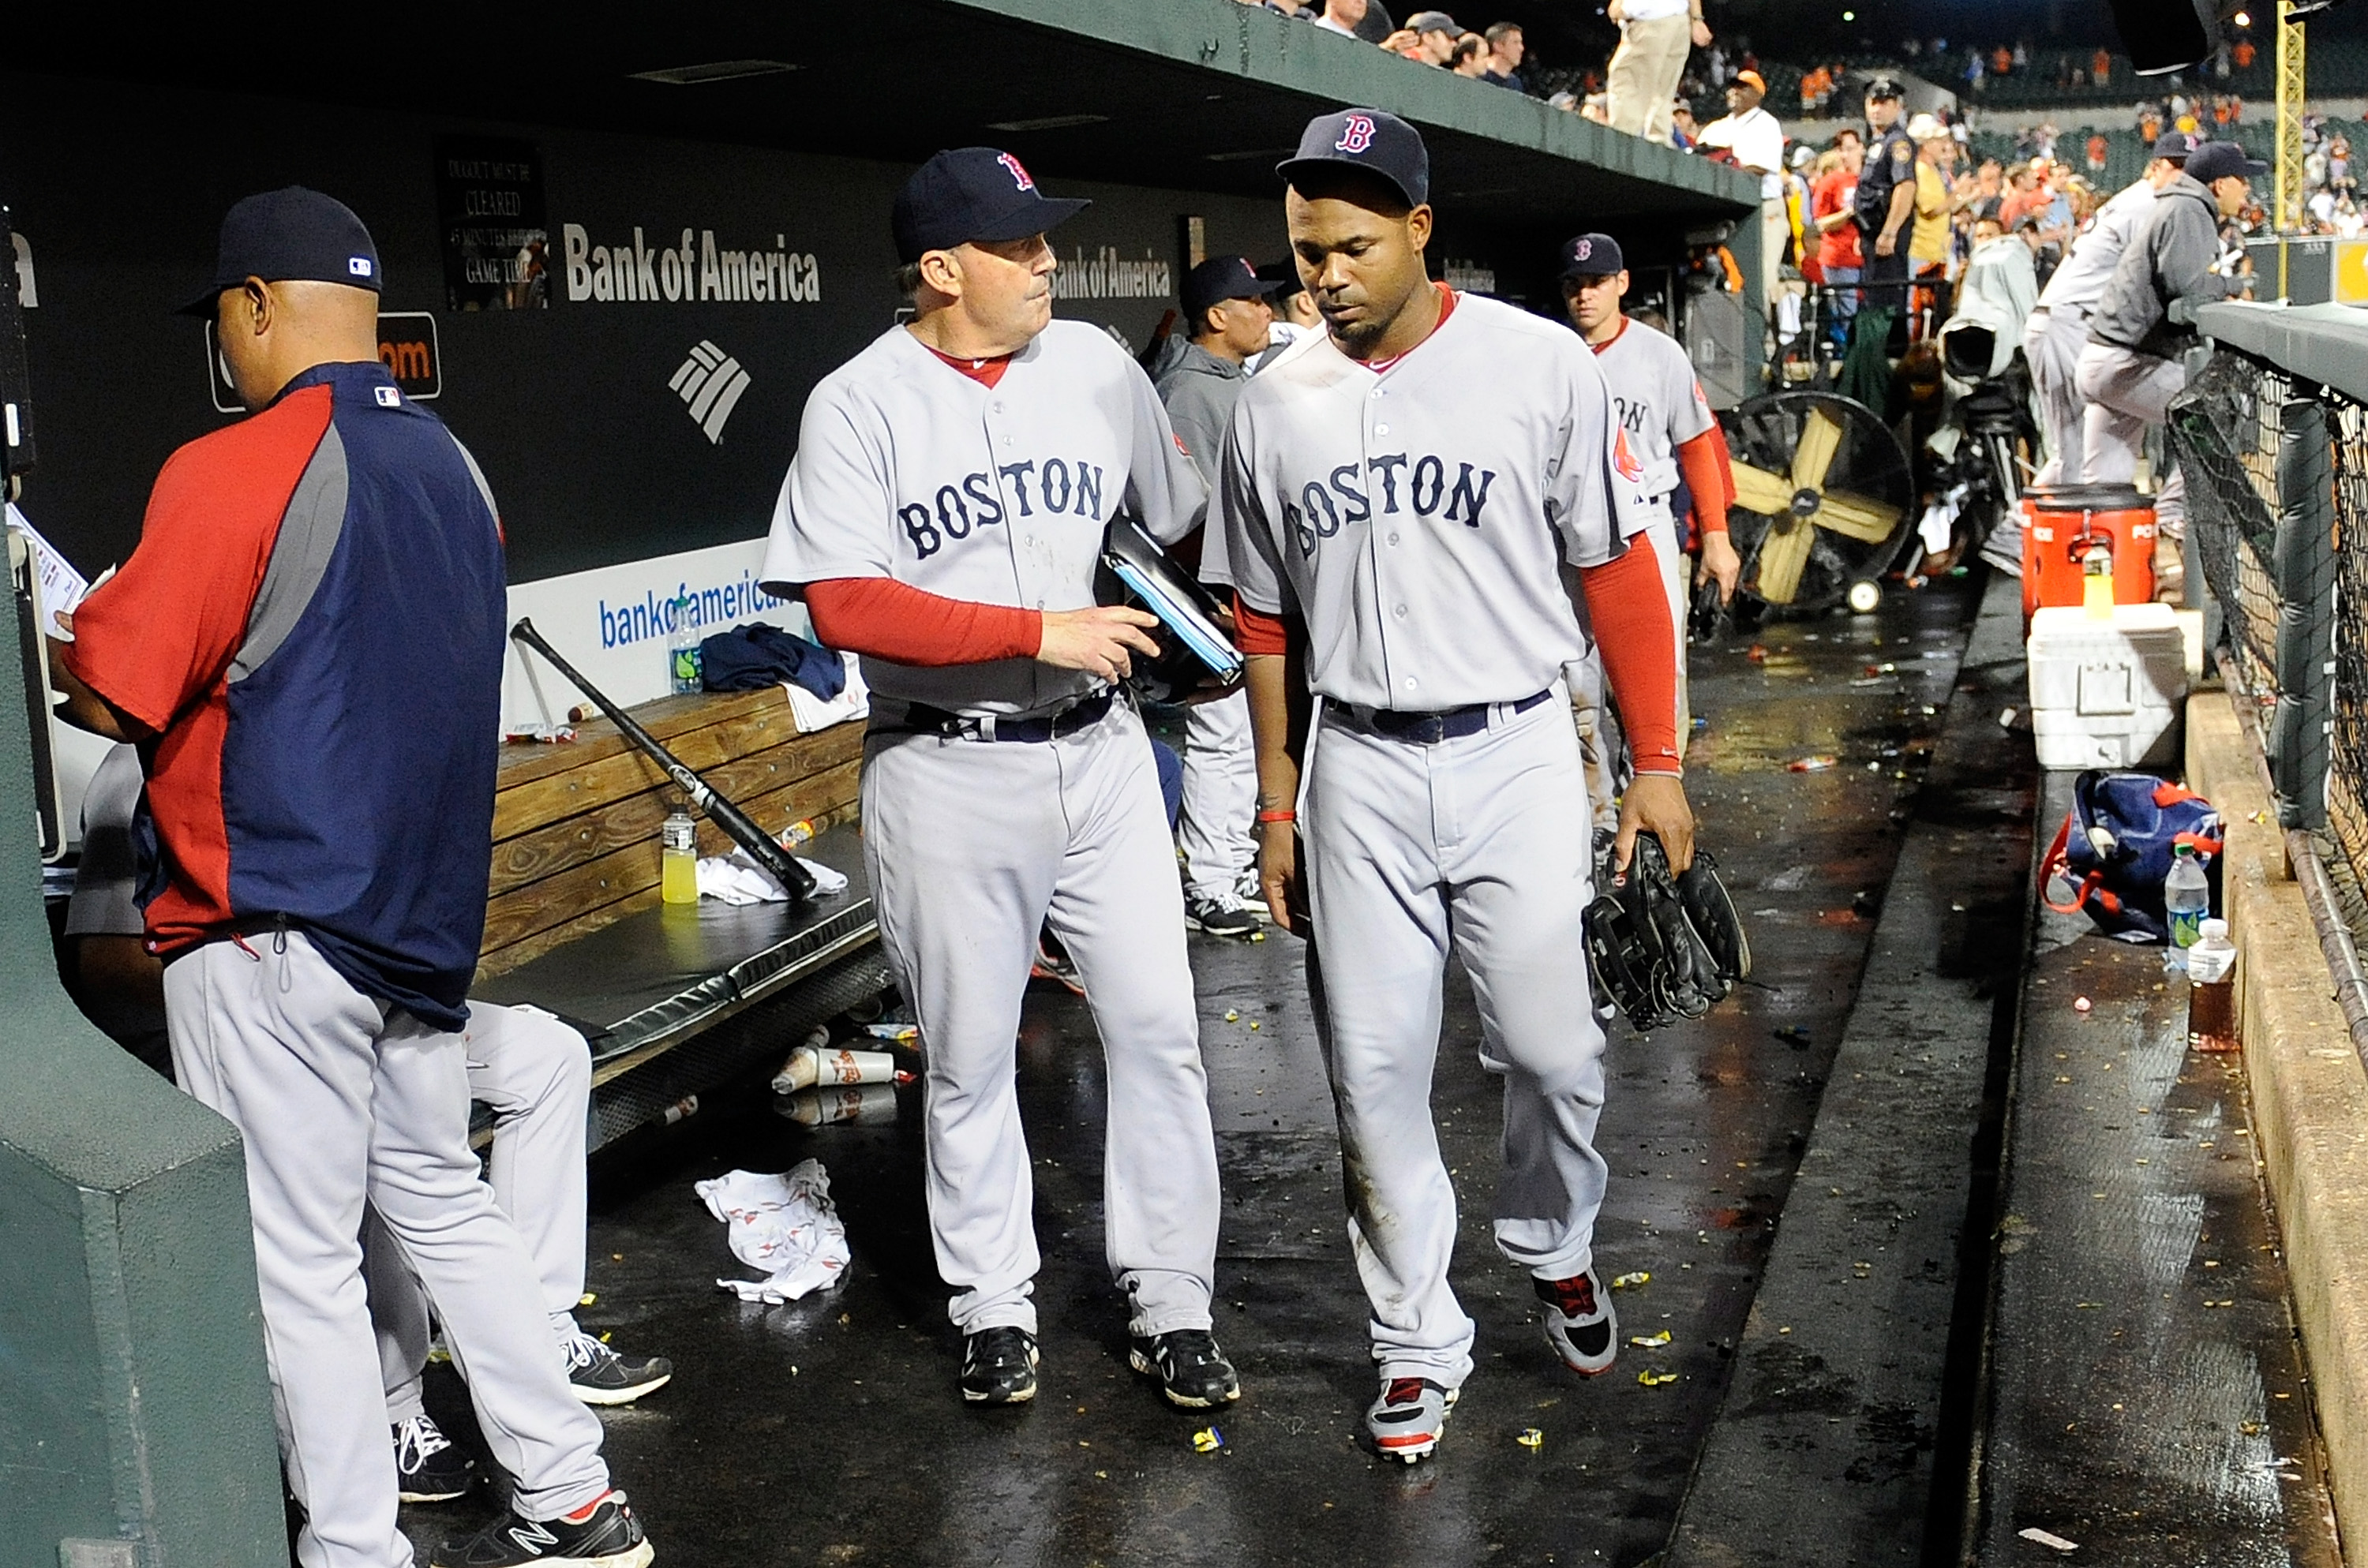 Red Sox epic collapse one for the record books - CBS News 1e9b91286f1